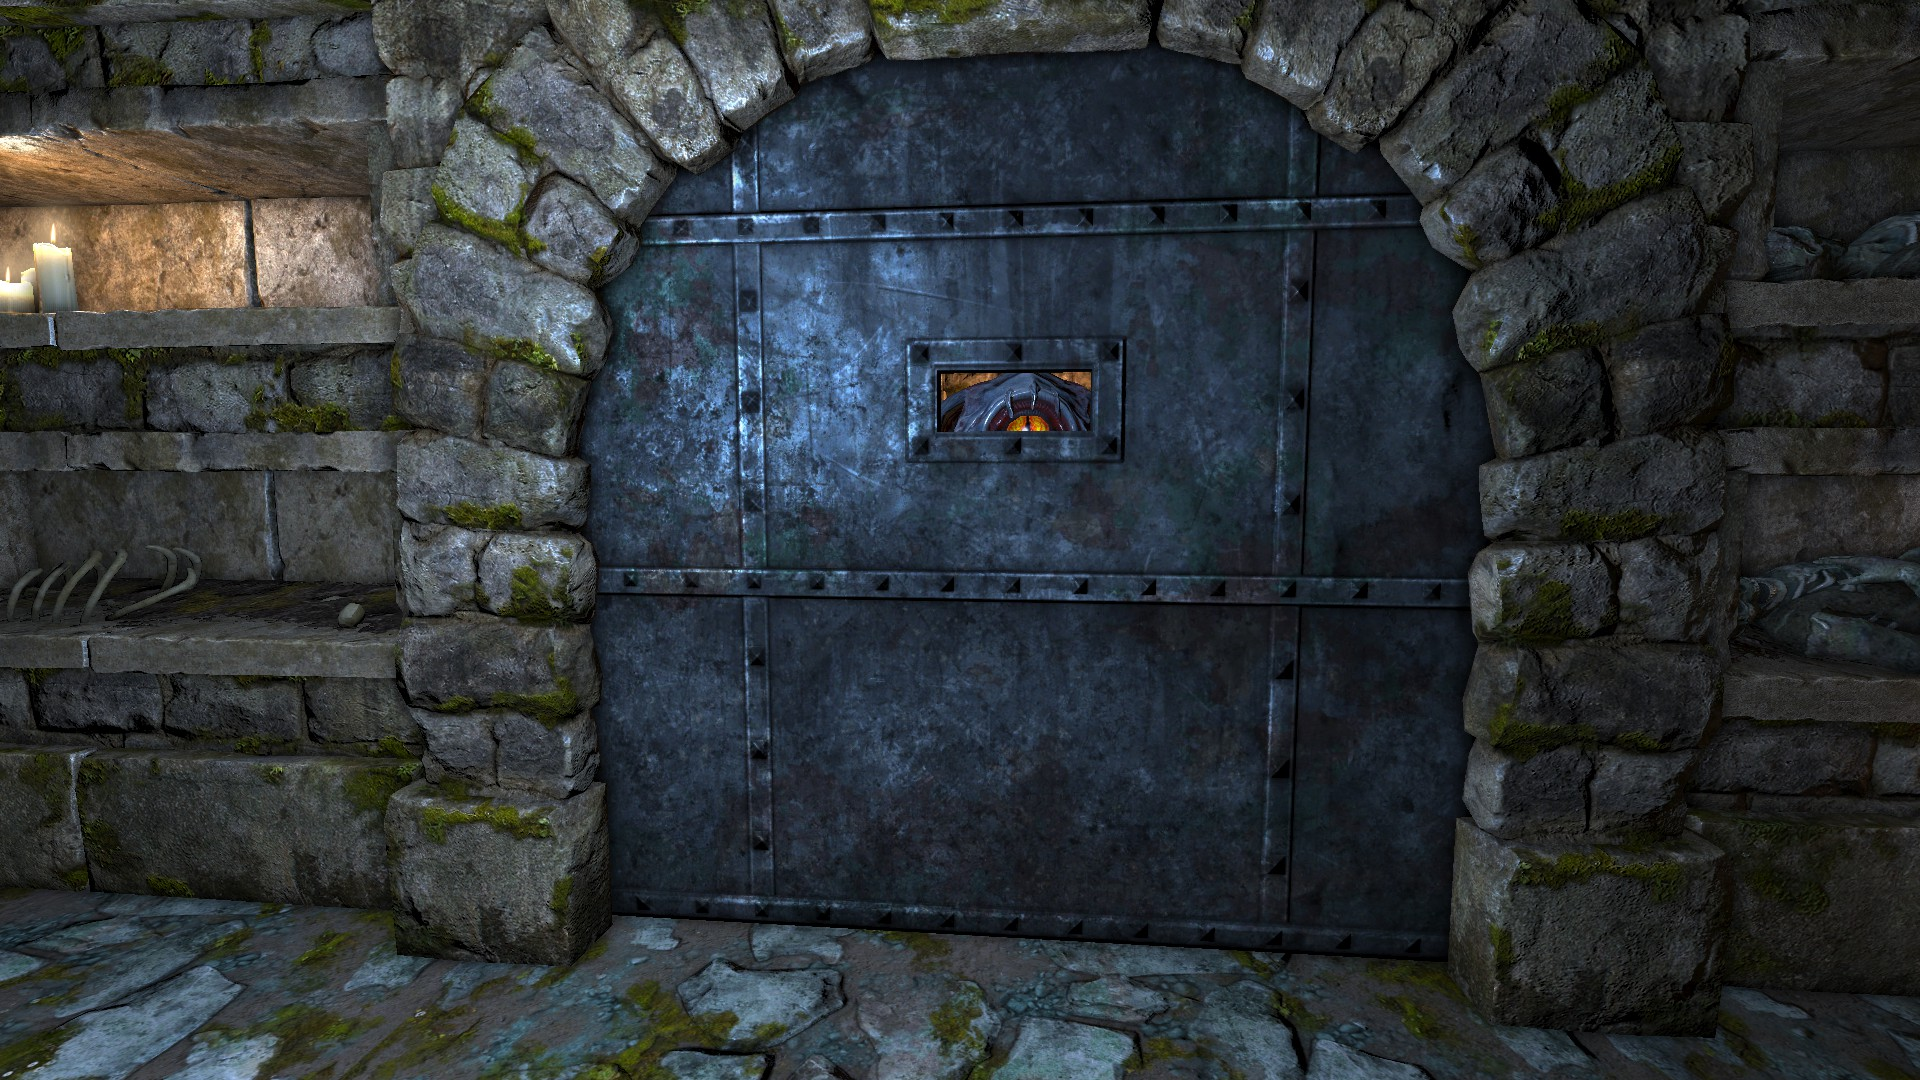 Artistry in Games 2014-10-14_00003 Legend of Grimrock 2 Review Reviews  RPG review retro PC old-school legend of grimrock indie grimrock dungeon crawling Dungeon challenging almost human